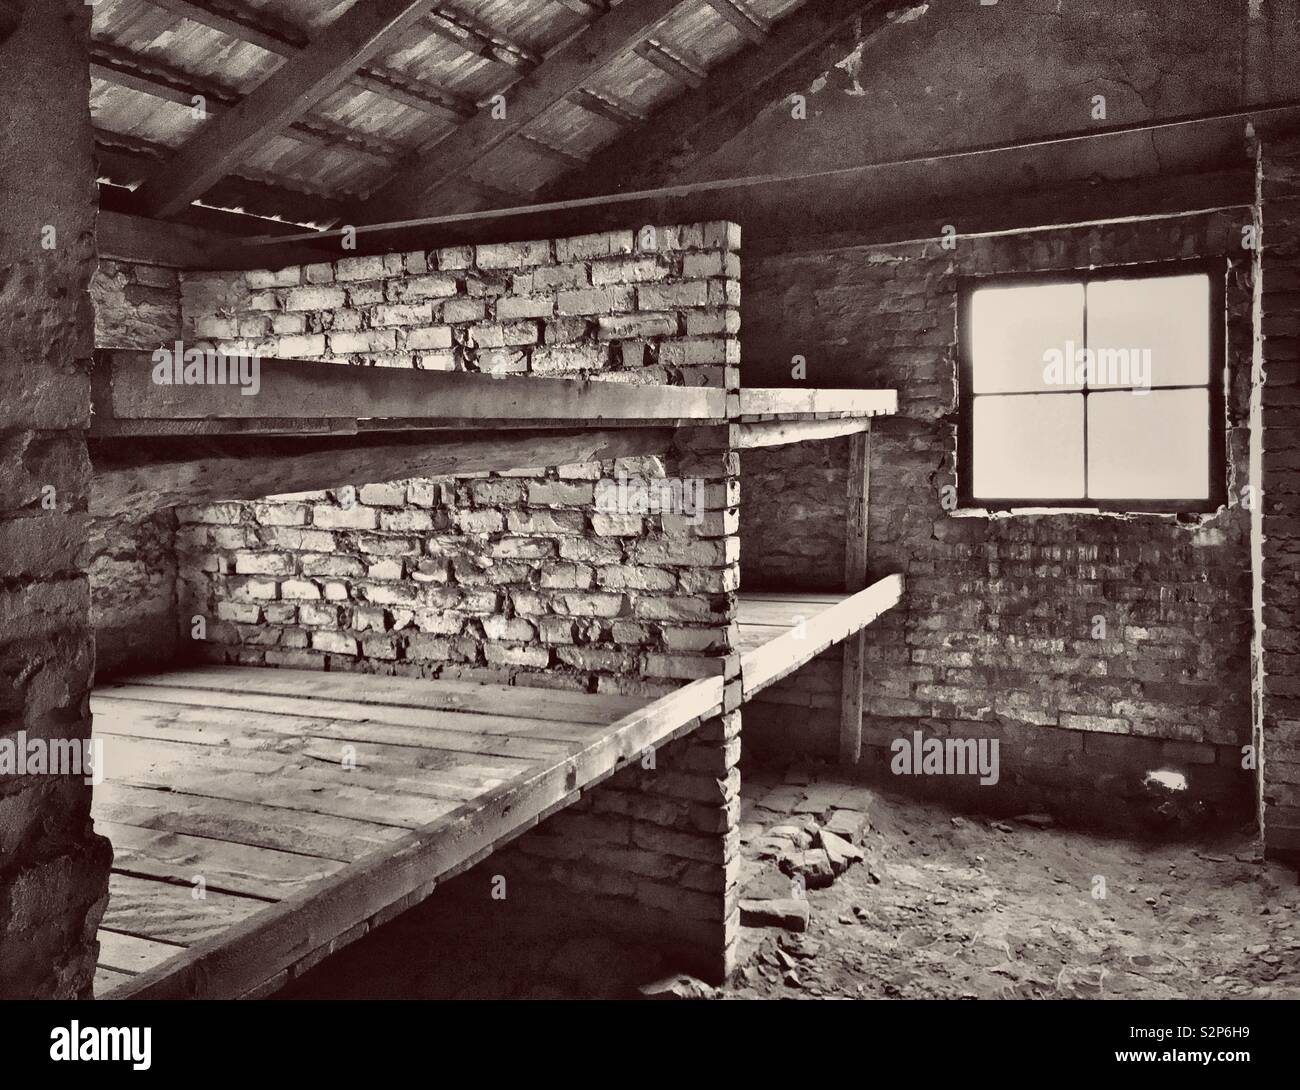 A place of horrific suffering-sleeping quarters of Jewish prisoners at the Nazi Auschwitz II - Birkenau Concentration Camp near Oswiecim in Poland. Thousands of people perished here. © COLIN HOSKINS. - Stock Image